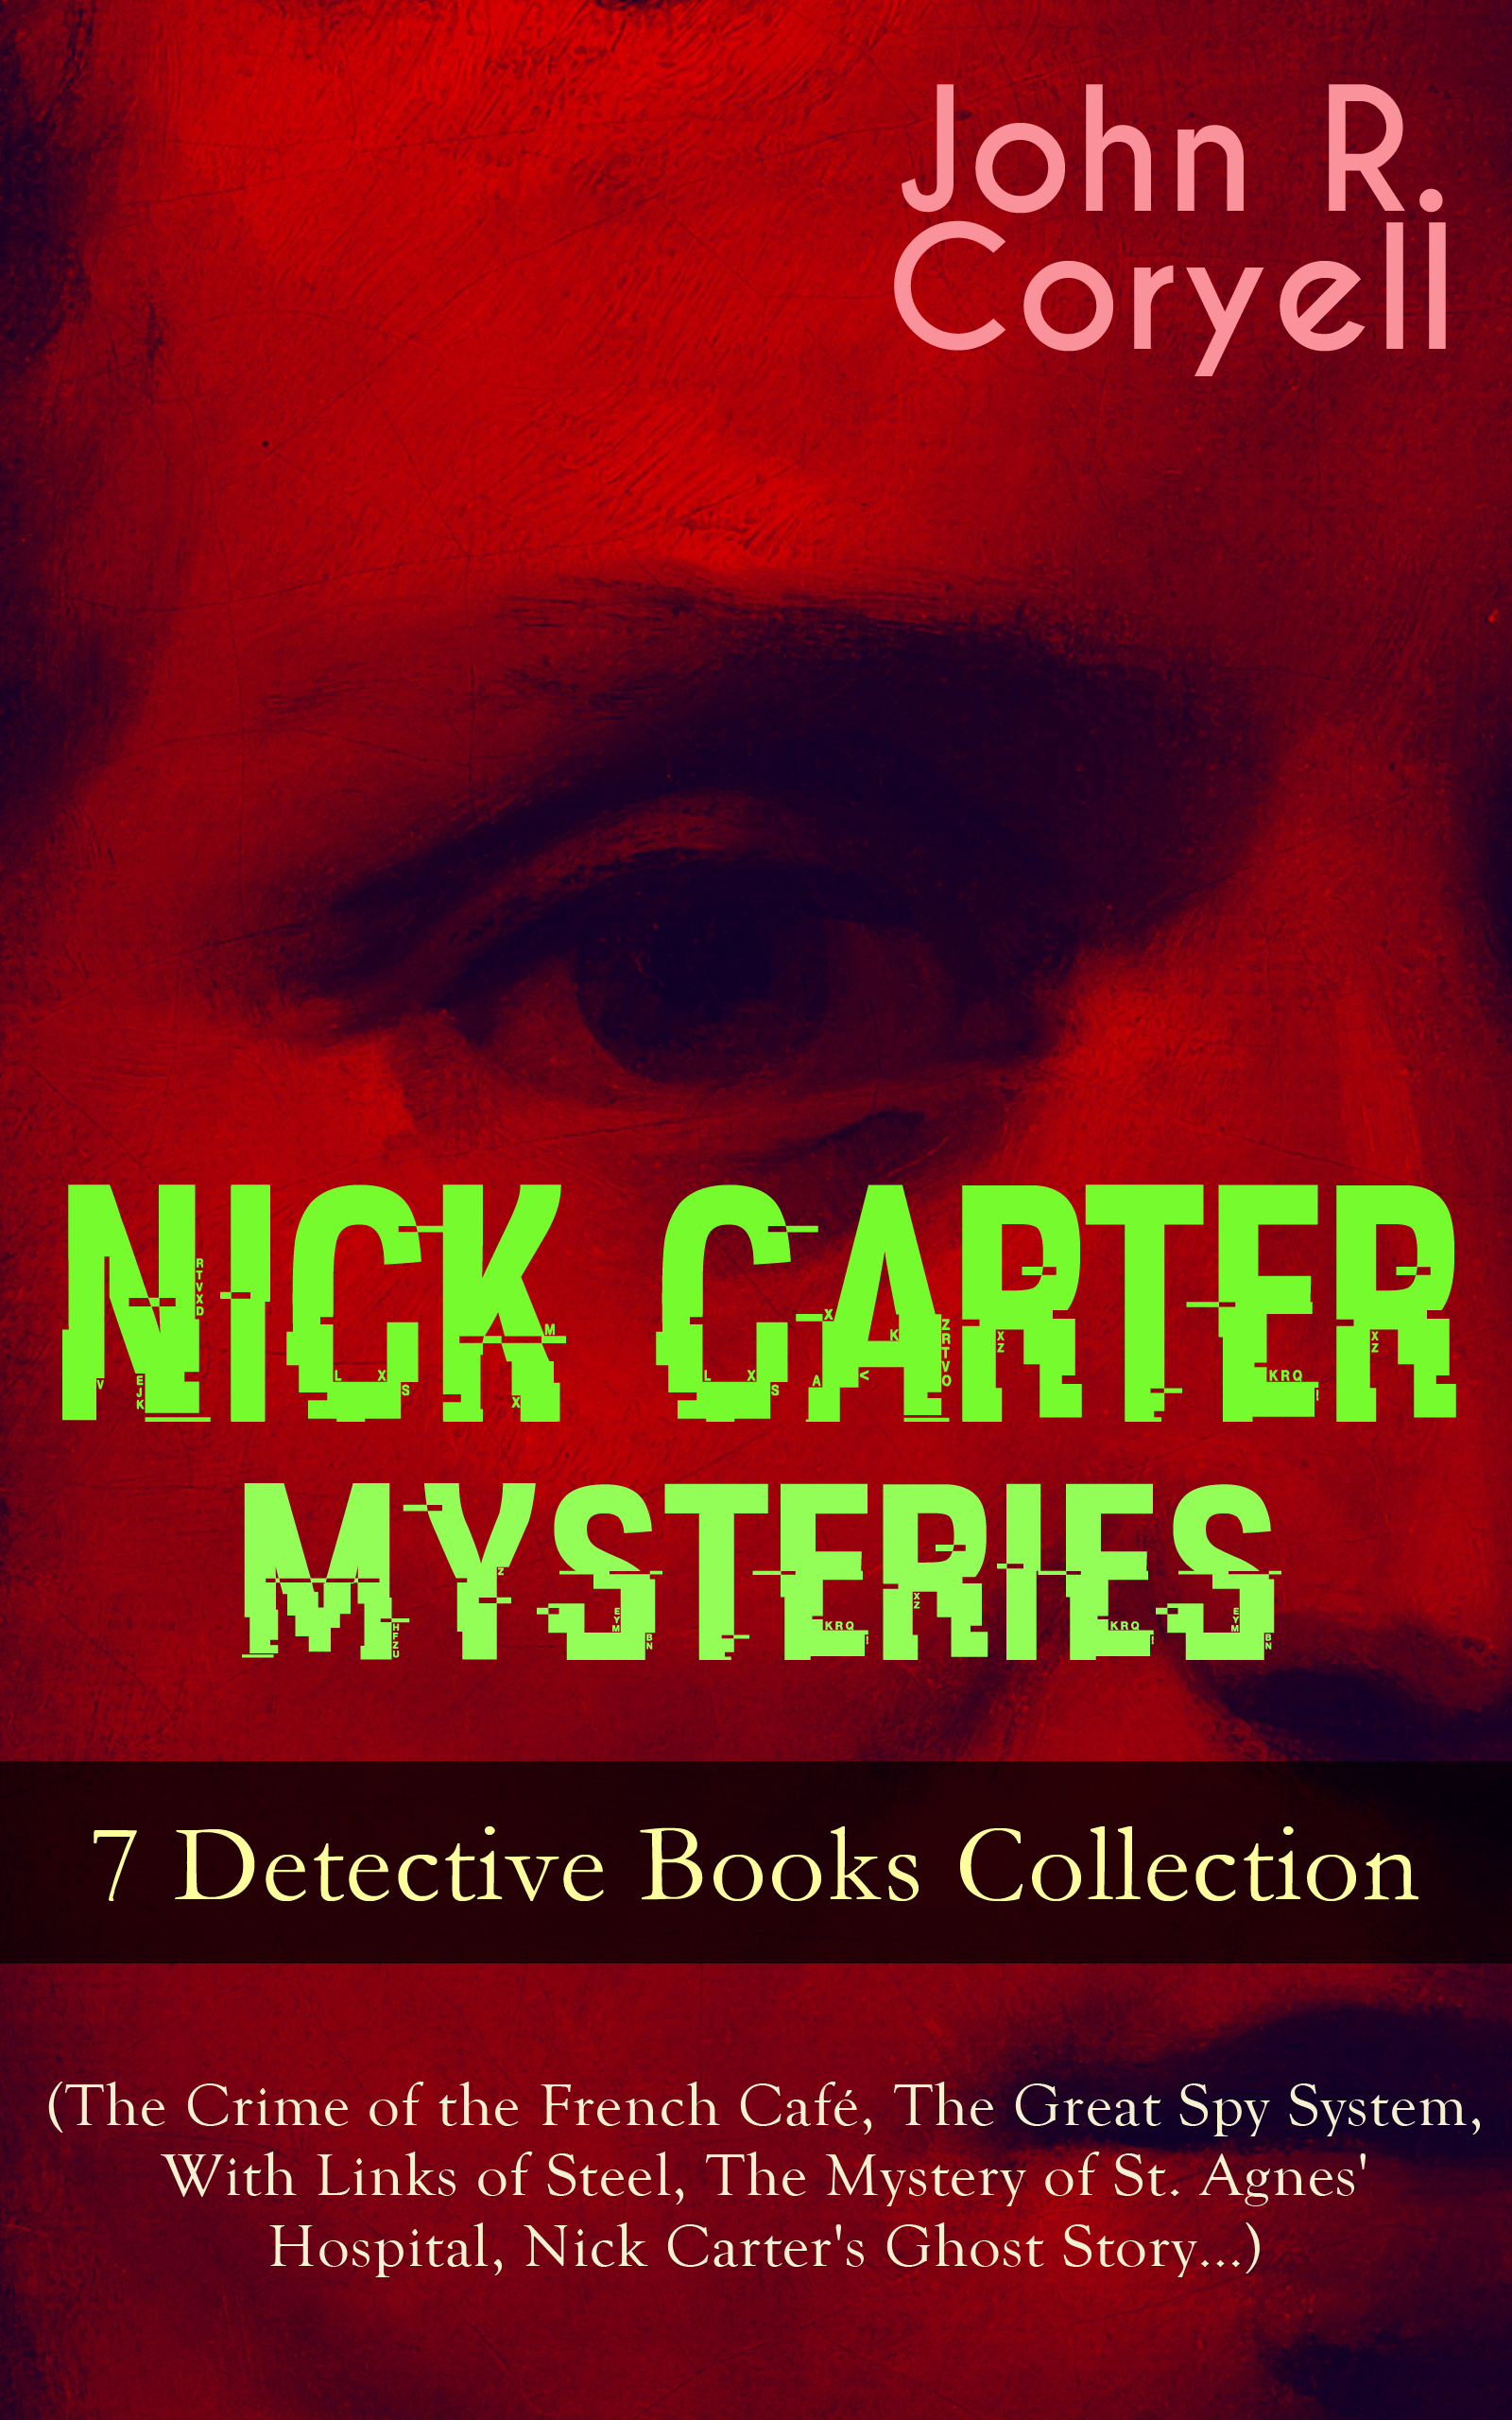 John R. Coryell NICK CARTER MYSTERIES - 7 Detective Books Collection (The Crime of the French Café, The Great Spy System, With Links of Steel, The Mystery of St. Agnes' Hospital, Nick Carter's Ghost Story…) john farris the corpse next door a detective sergeant randall mystery